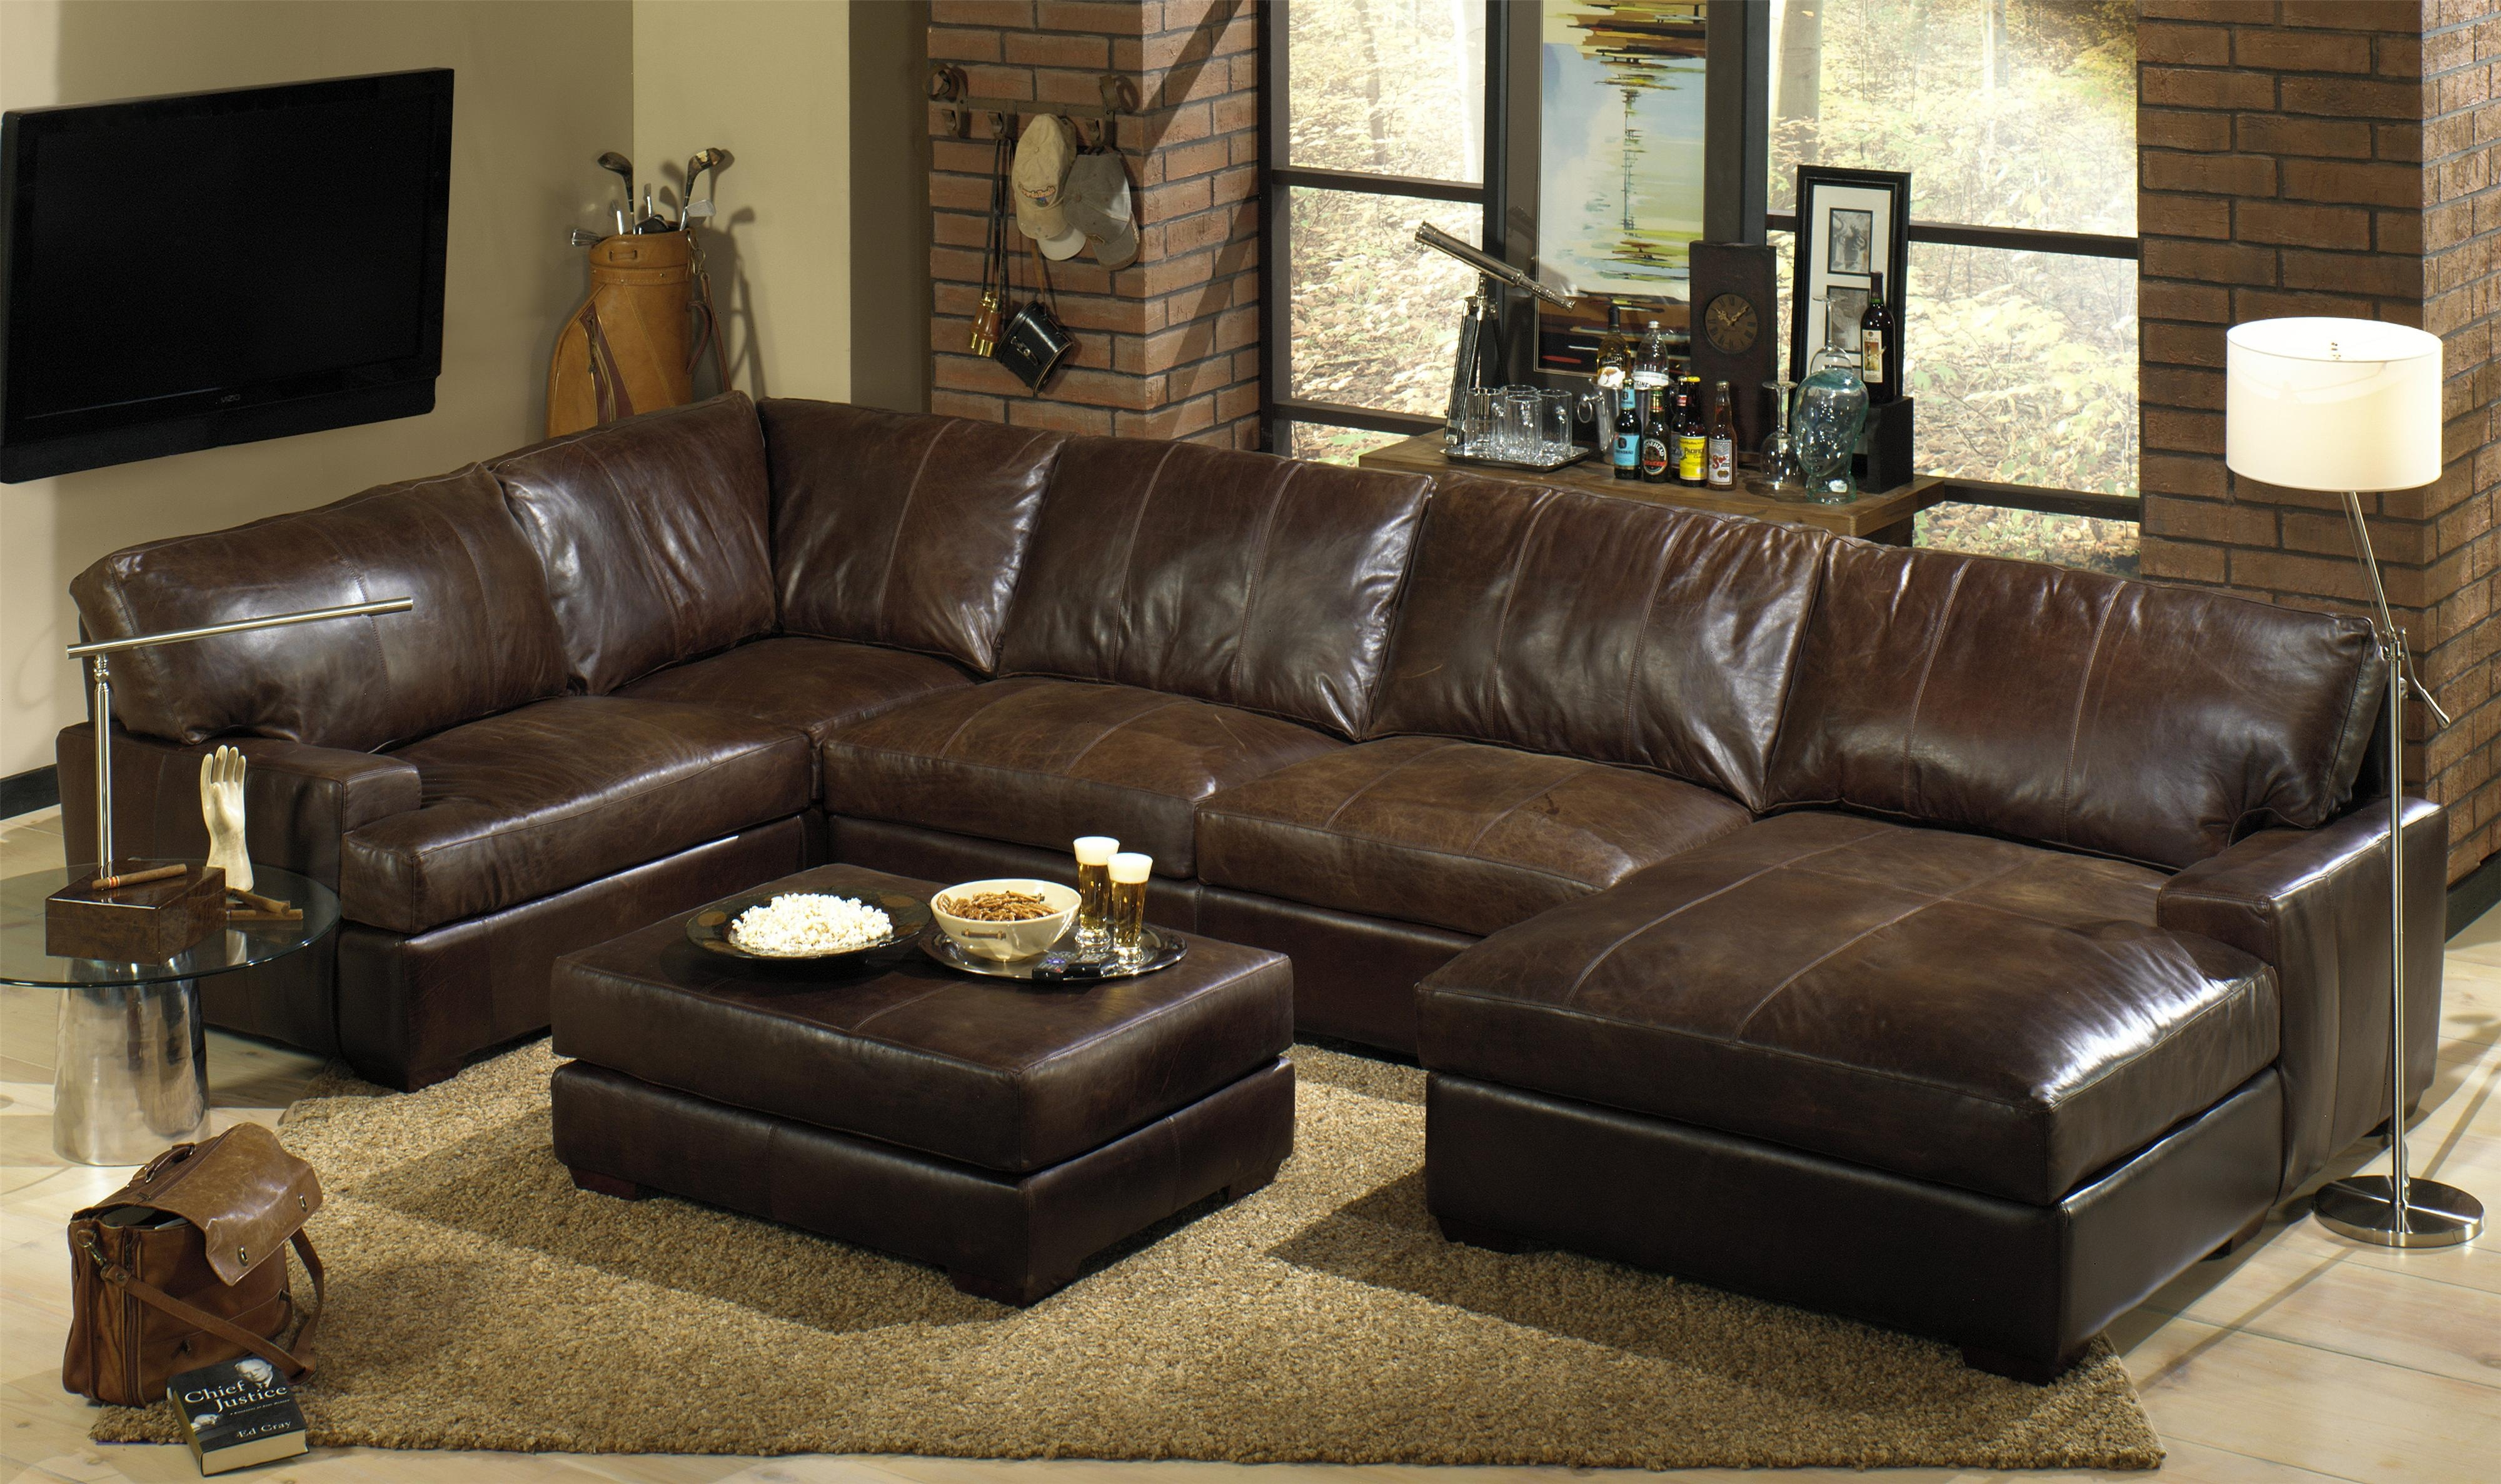 6 Piece Leather Sectional Sofa Cleanupflorida Intended For 6 Piece Leather Sectional Sofa (#1 of 12)